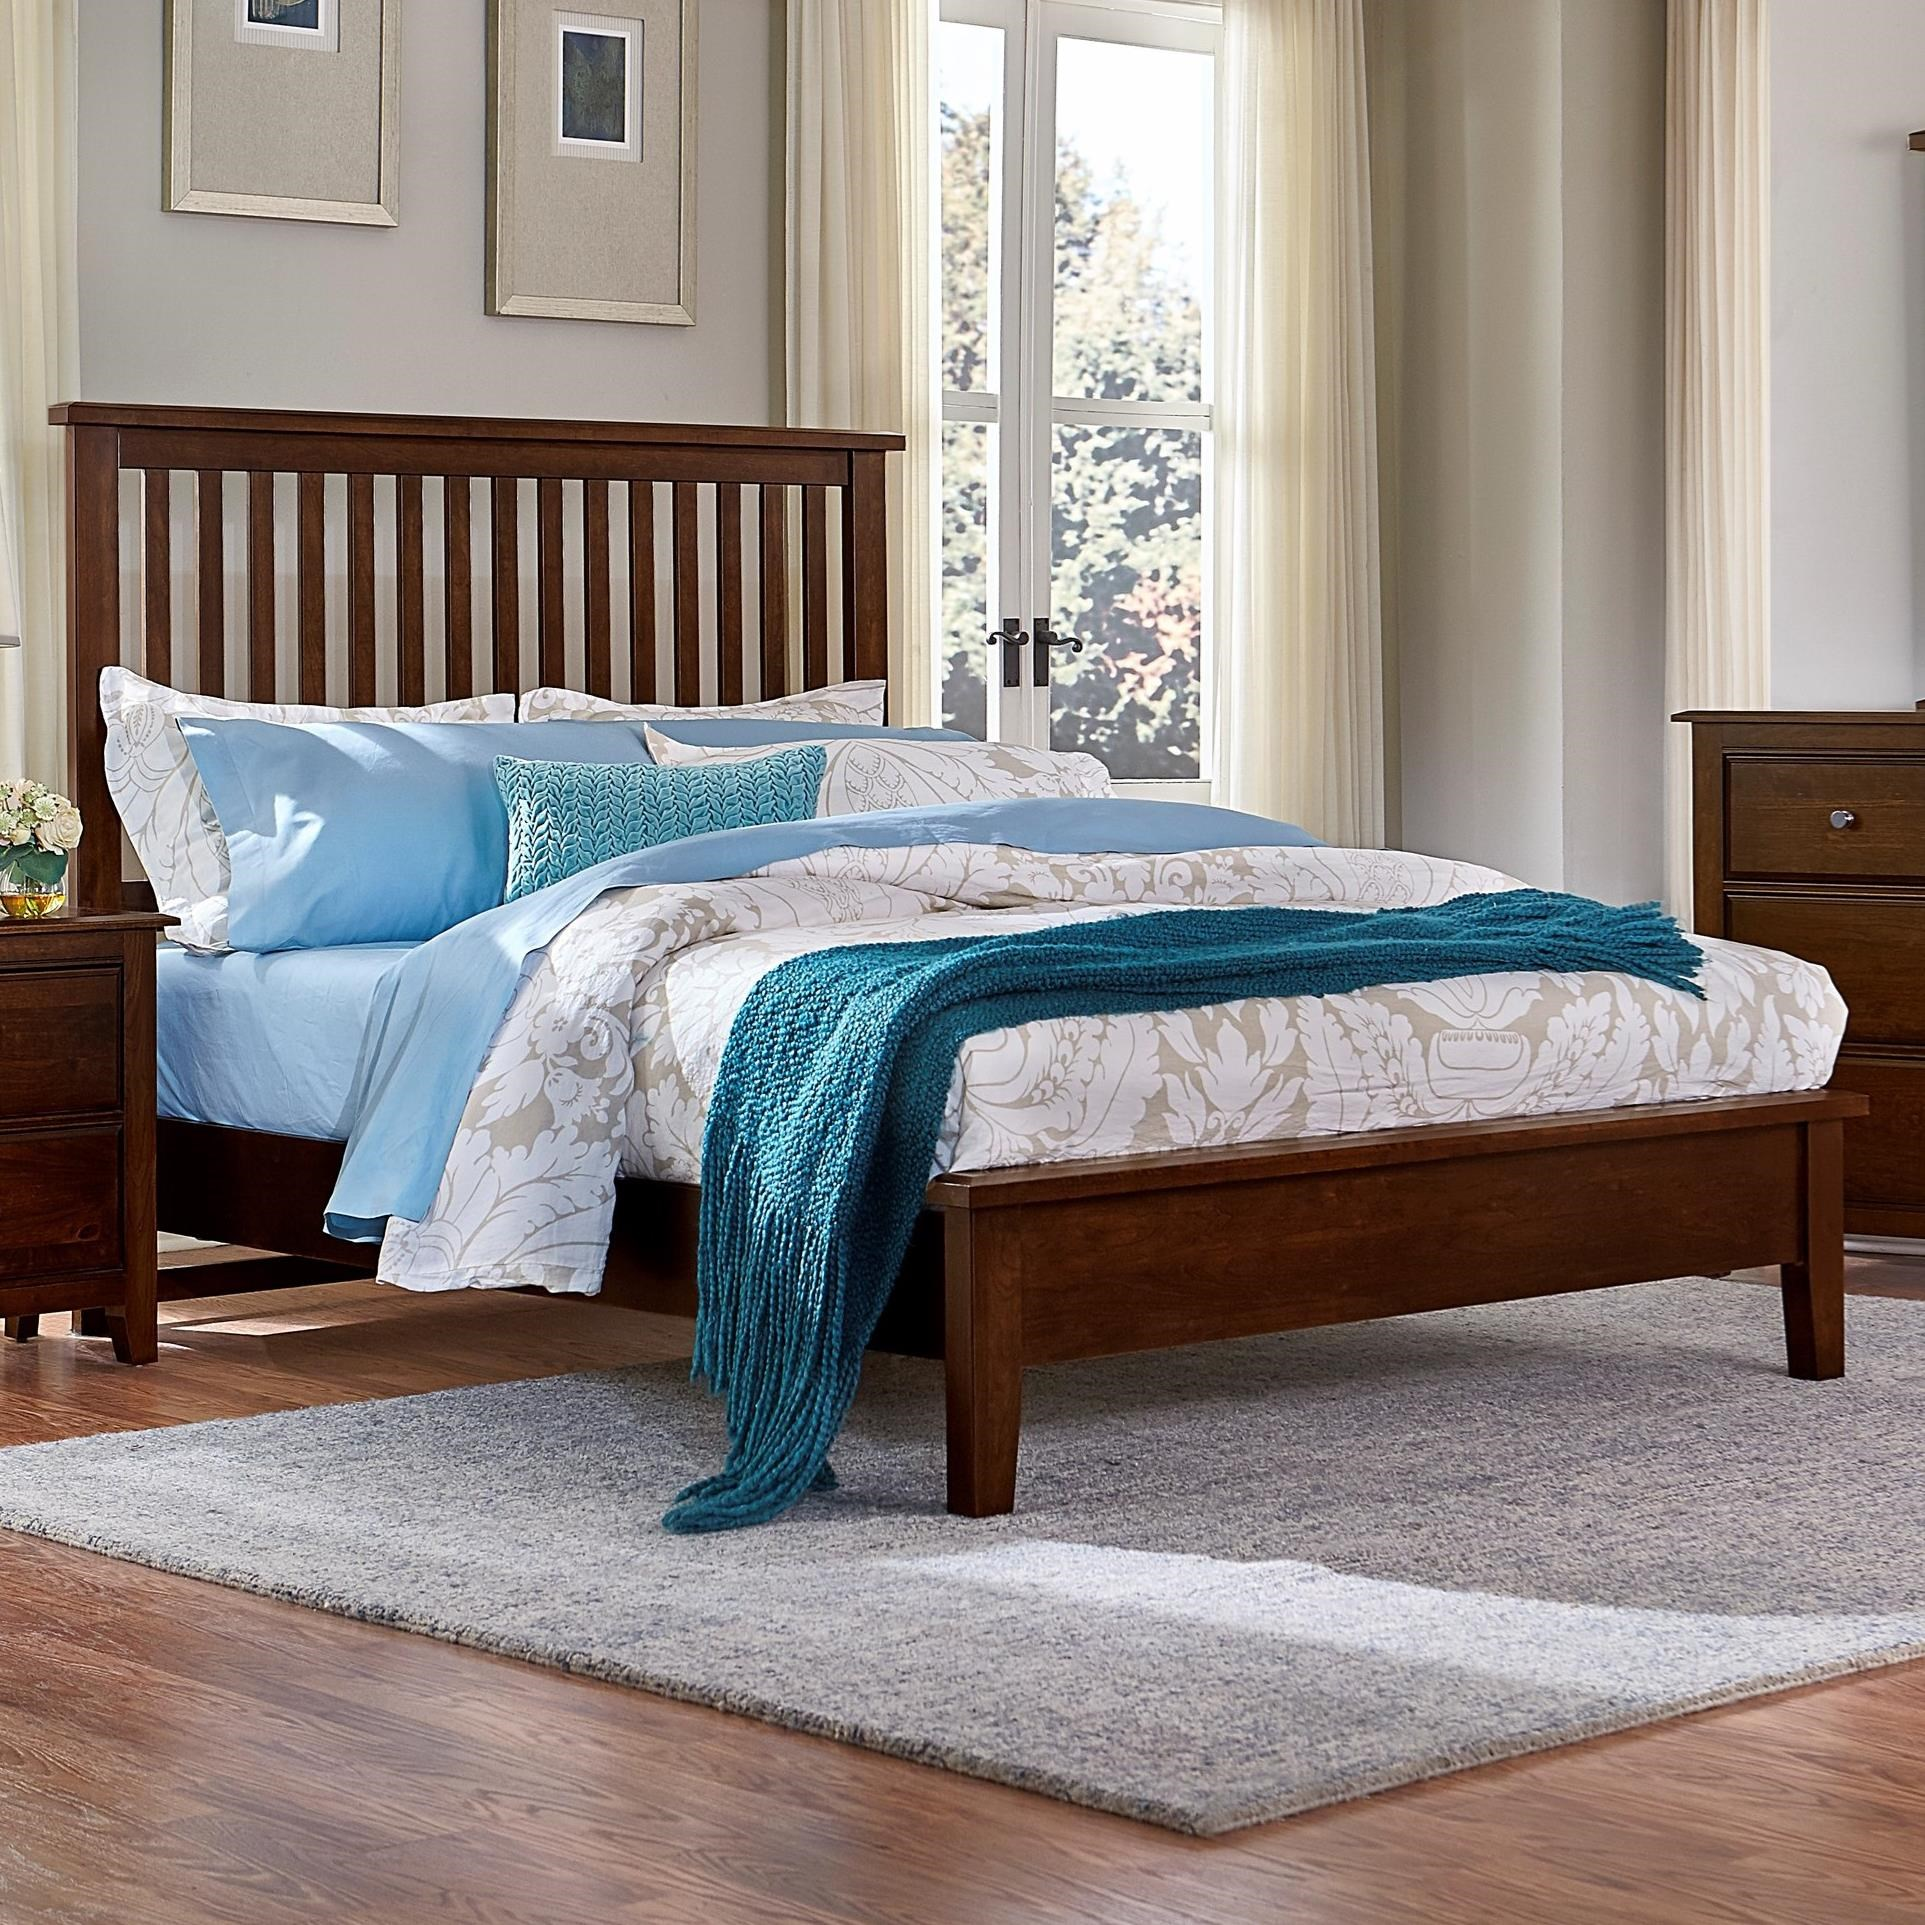 Artisan Choices King Slat Bed with Low Profile Footboard by Artisan & Post by Vaughan Bassett at Becker Furniture